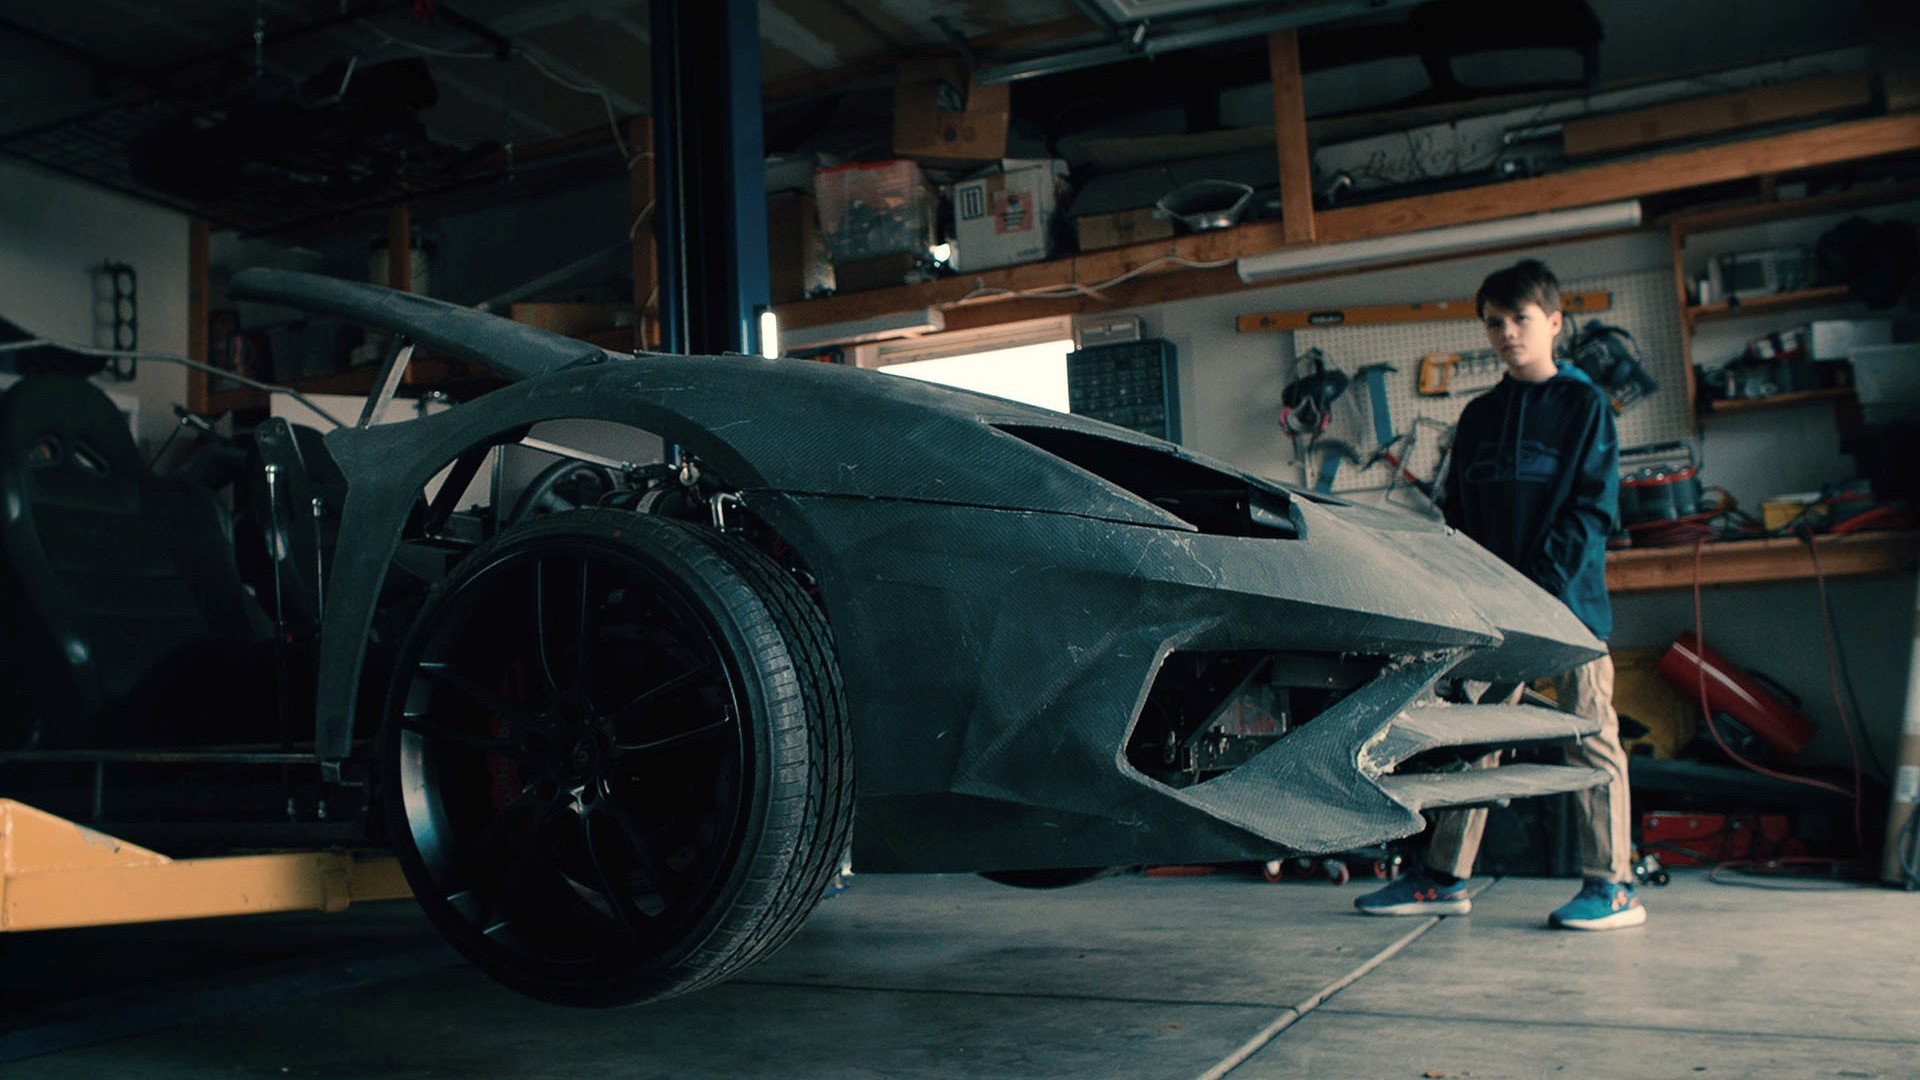 """Lamborghini Christmas video 2019: The search for the """"#RealLover"""" continues with a true story - Image 5"""